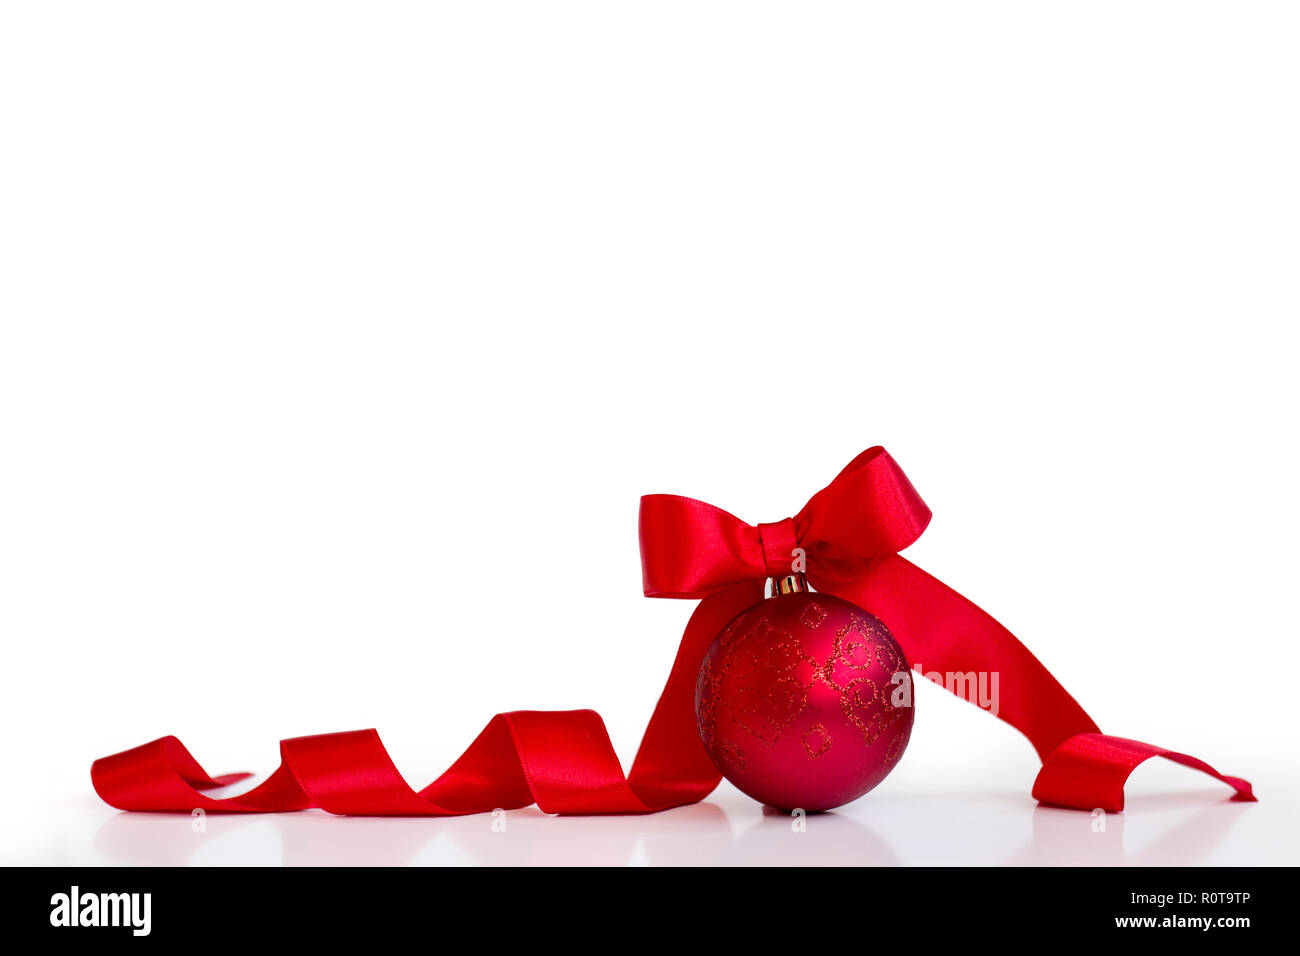 Red christmas ball, with red bow, isolated on white background, with copy space Stock Photo